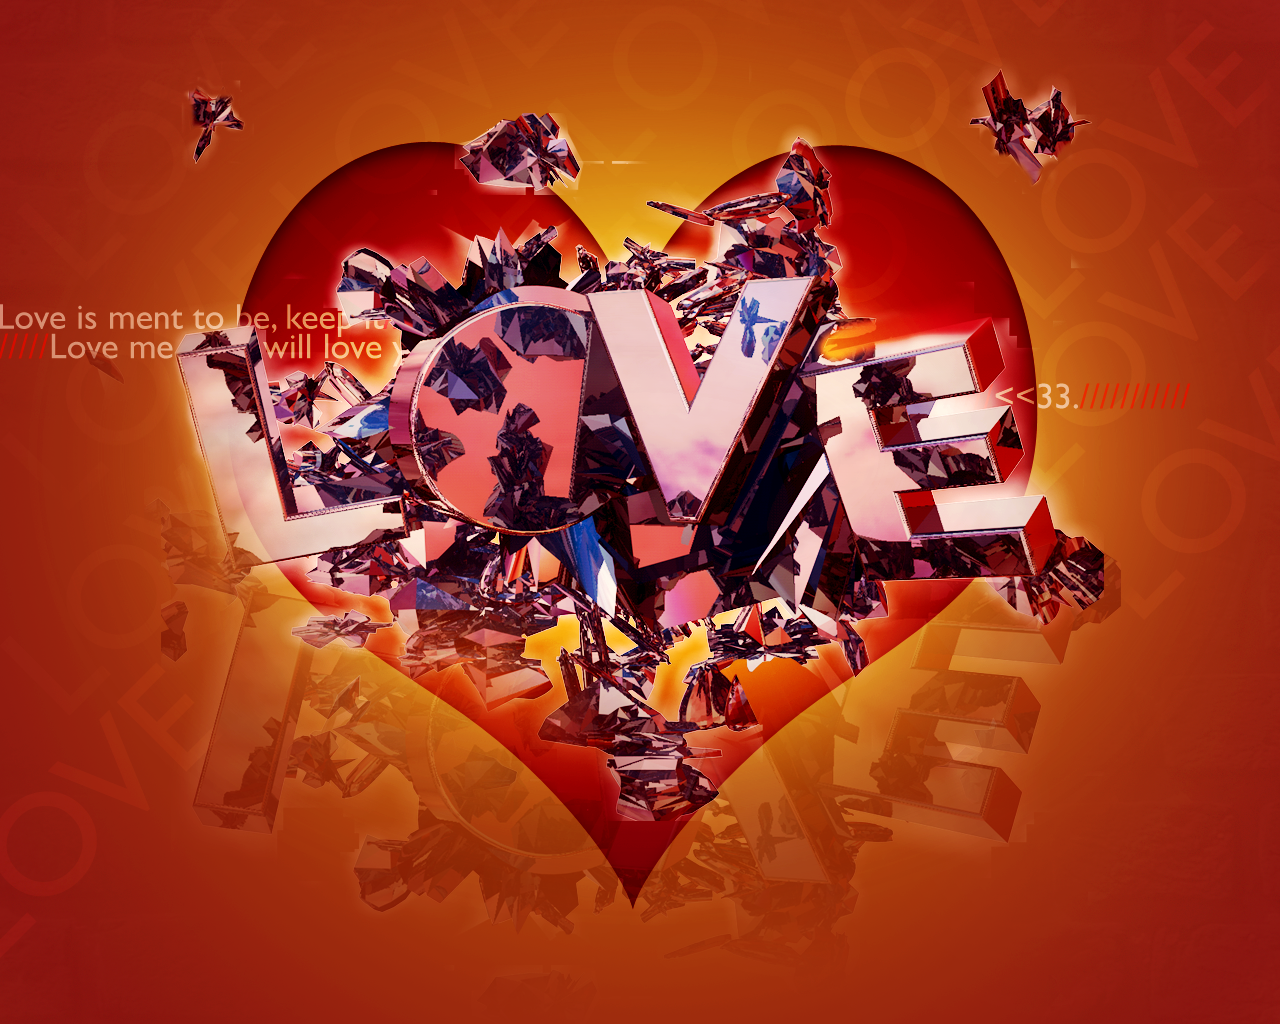 Love Wallpaper For New : Amazing Wallpapers: New love photos wallpaper, new love wallpaper